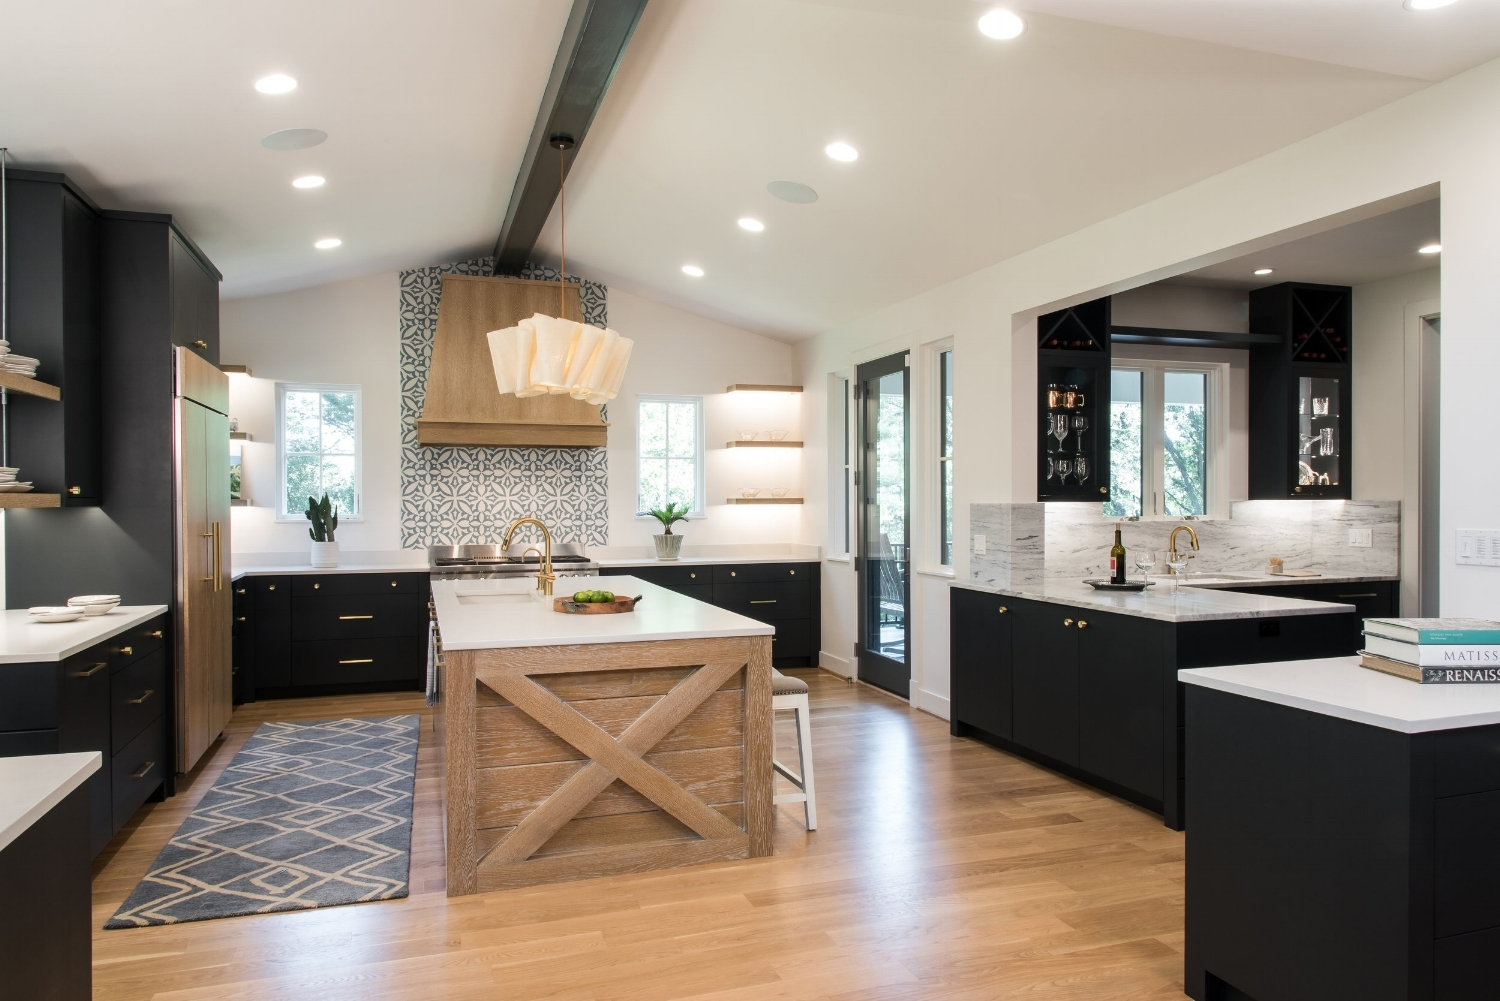 Matthews - Oak Valley kitchen and bath-8776.jpg